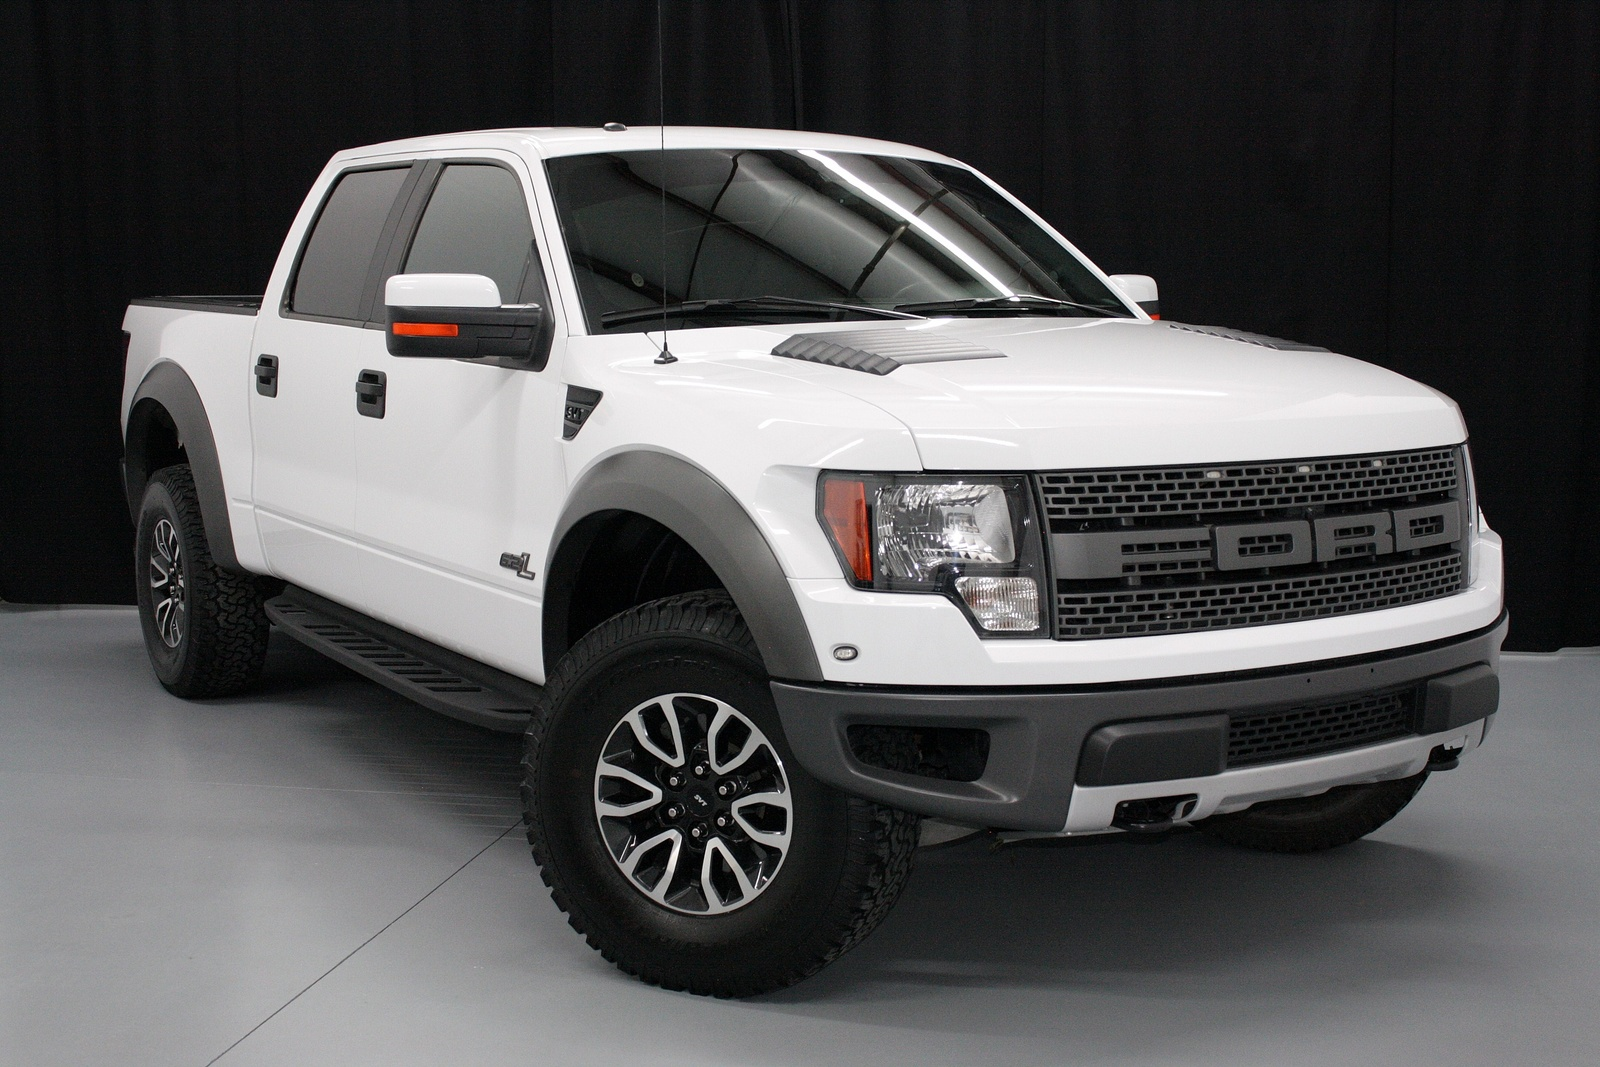 Search Results: 2013 Ford Bronco Raptor